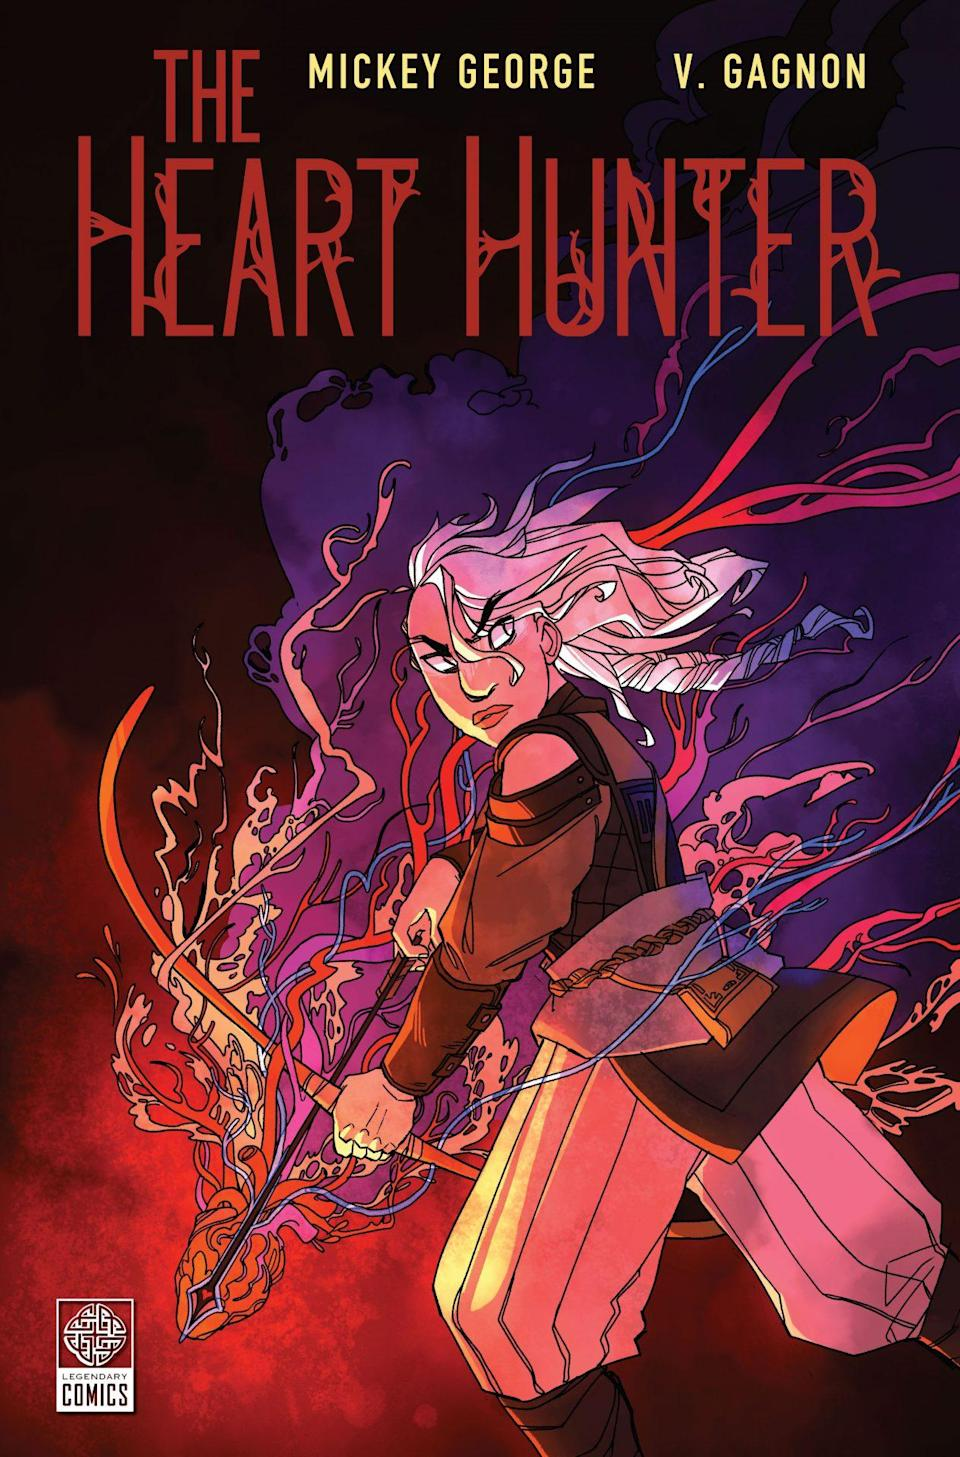 The cover for The Heart Hunter original graphic novel